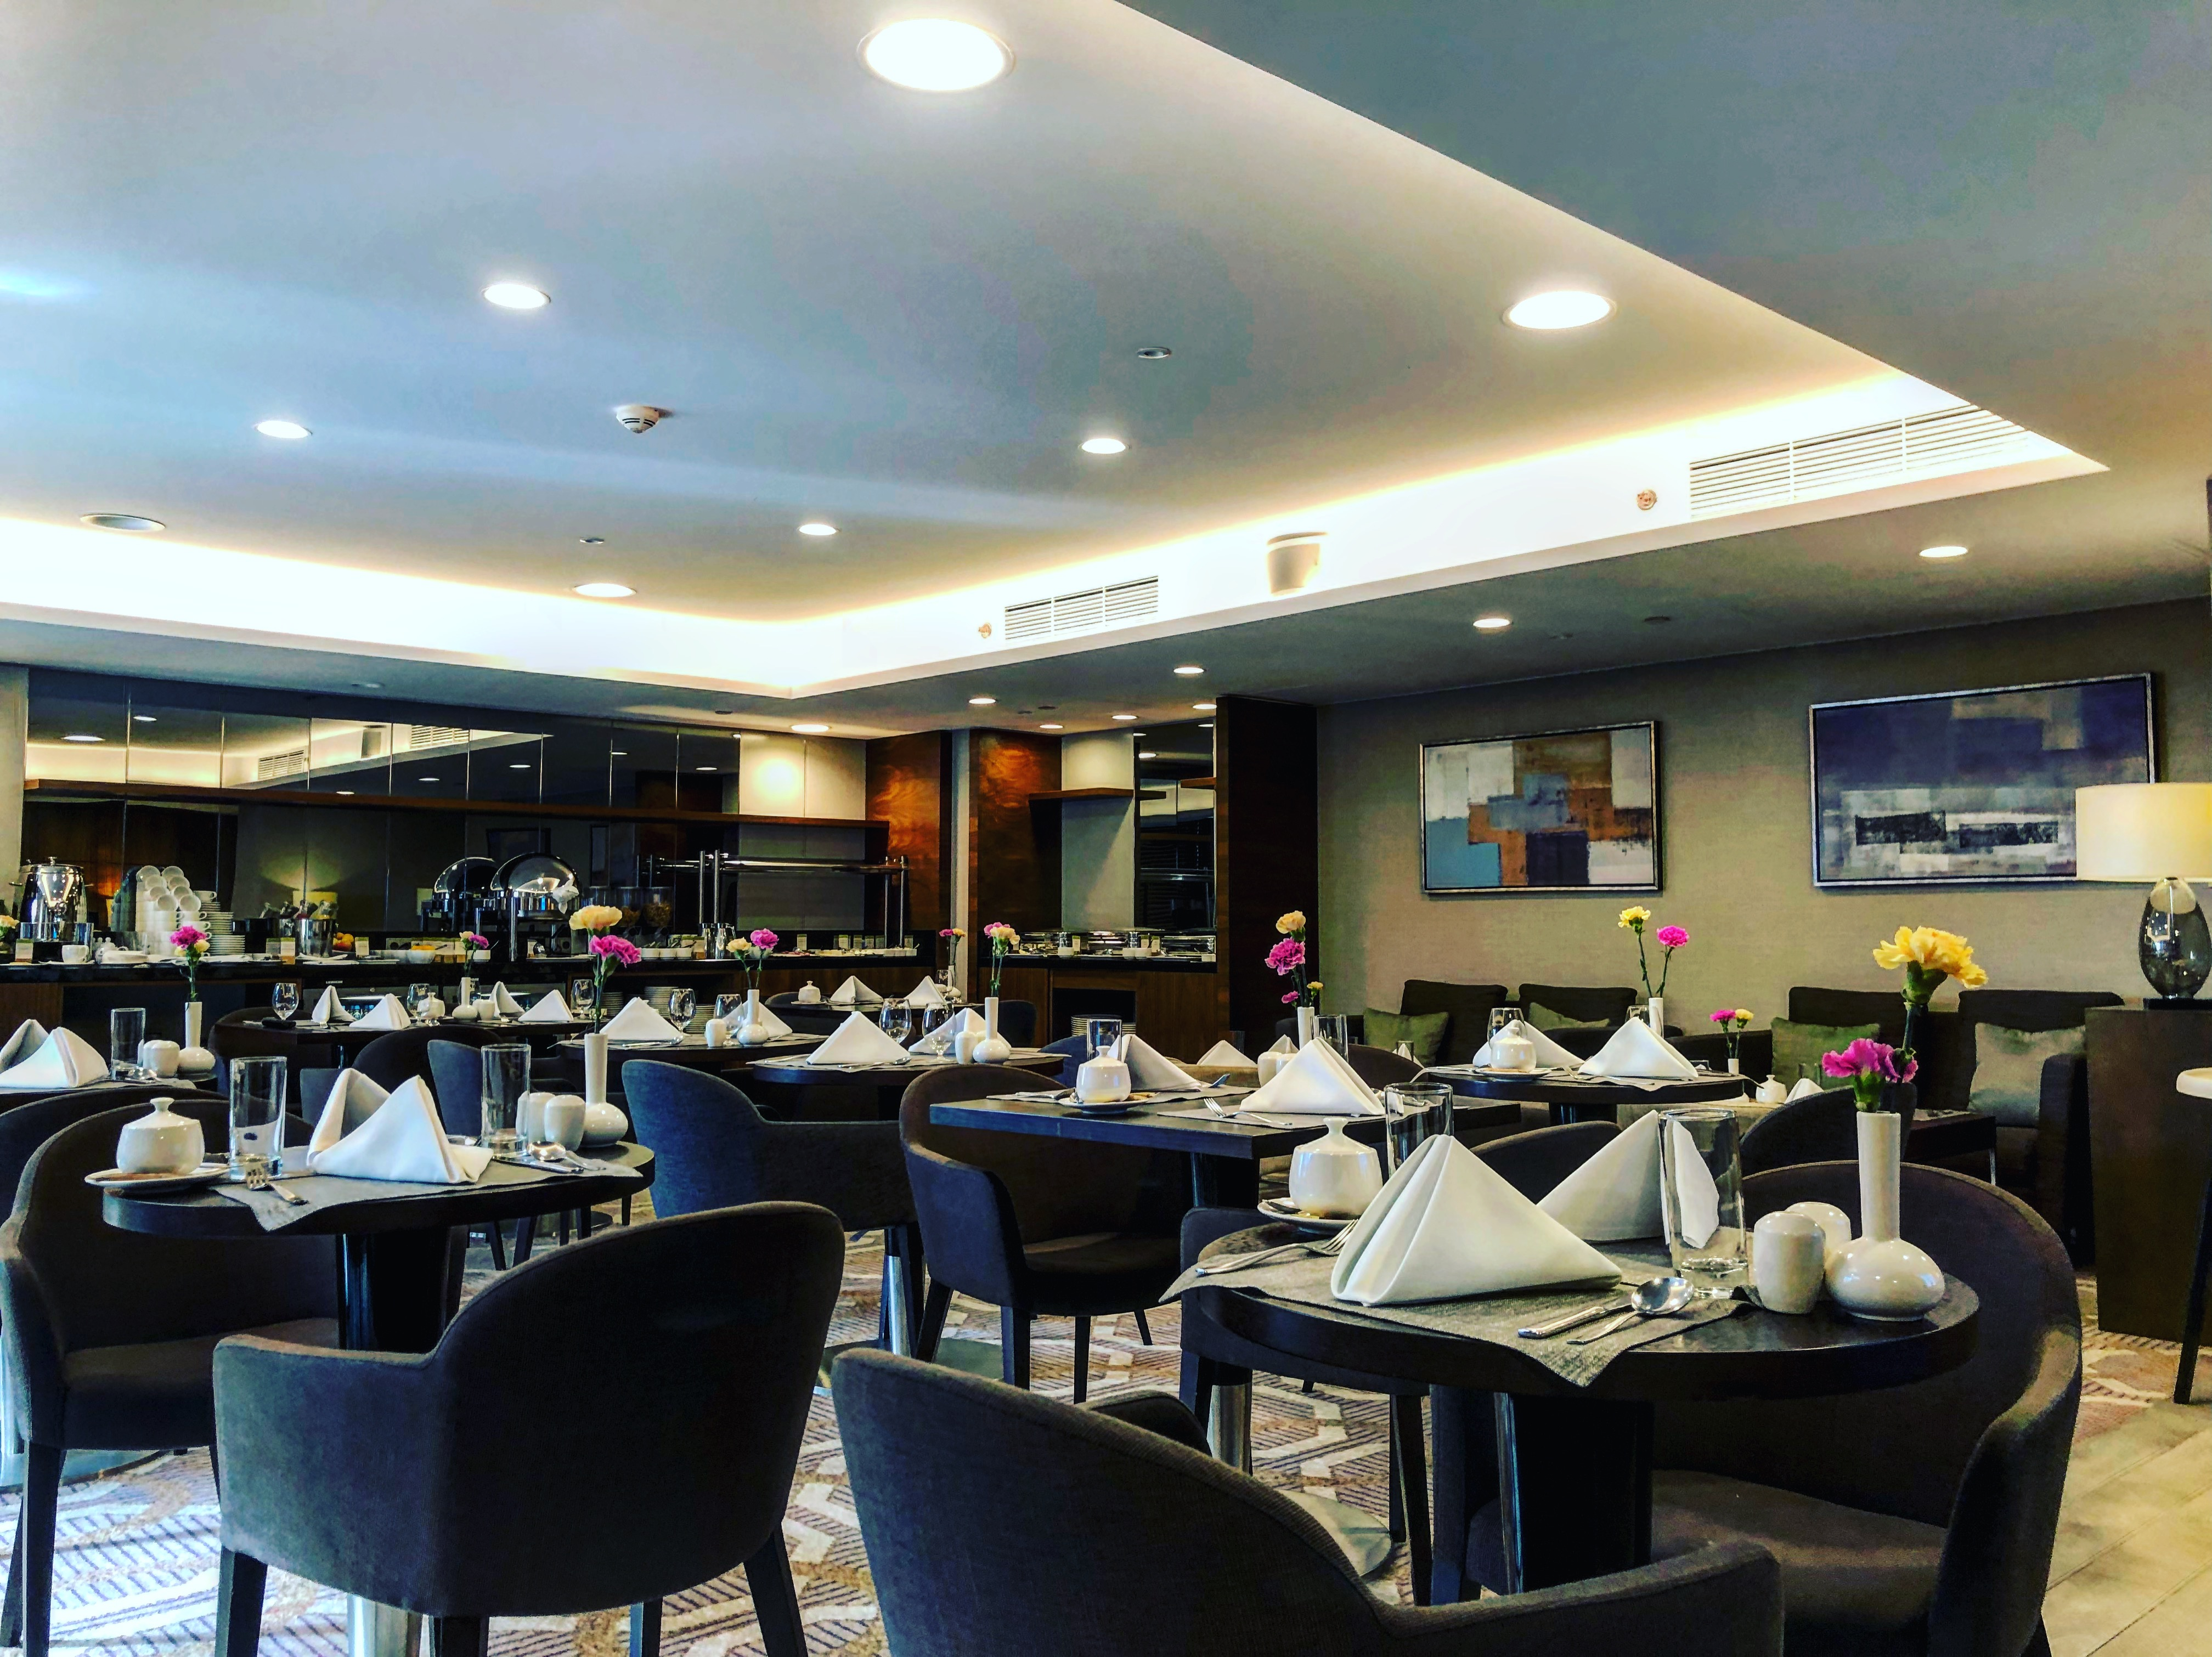 Salonik Executive Lounge w DoubleTree by Hilton Warsaw